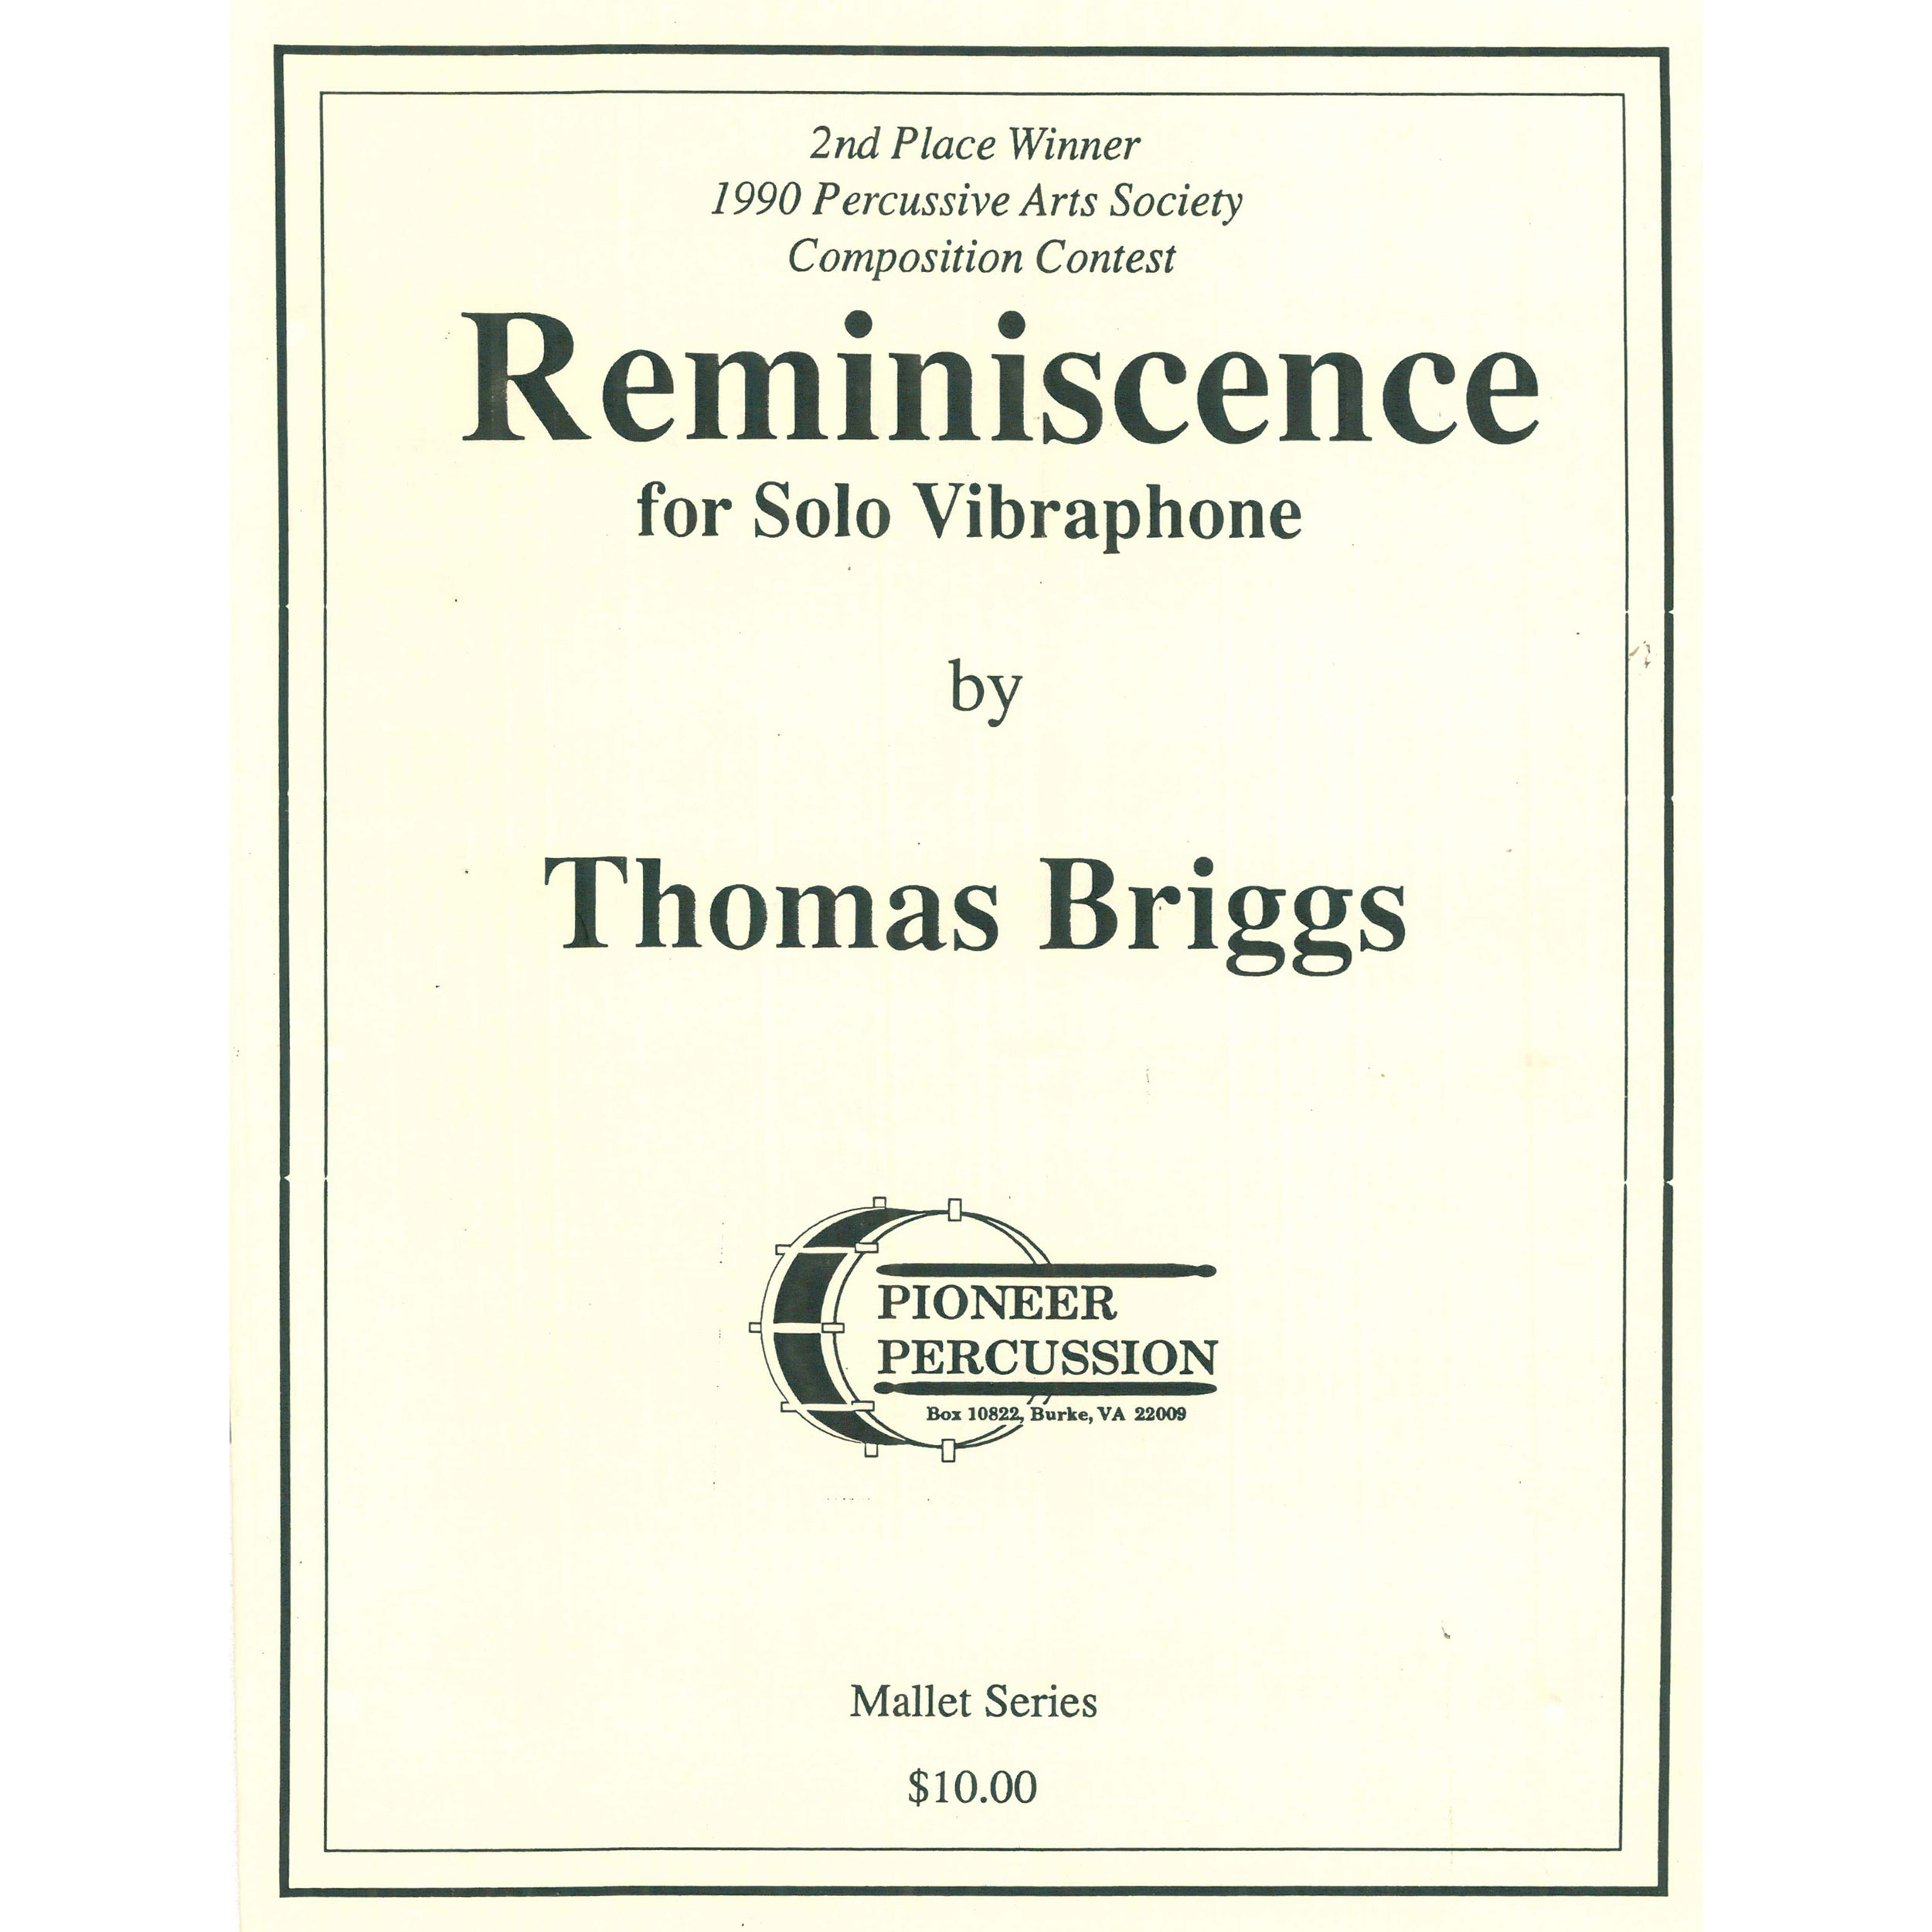 Reminiscence for Solo Vibraphone by Thomas Briggs